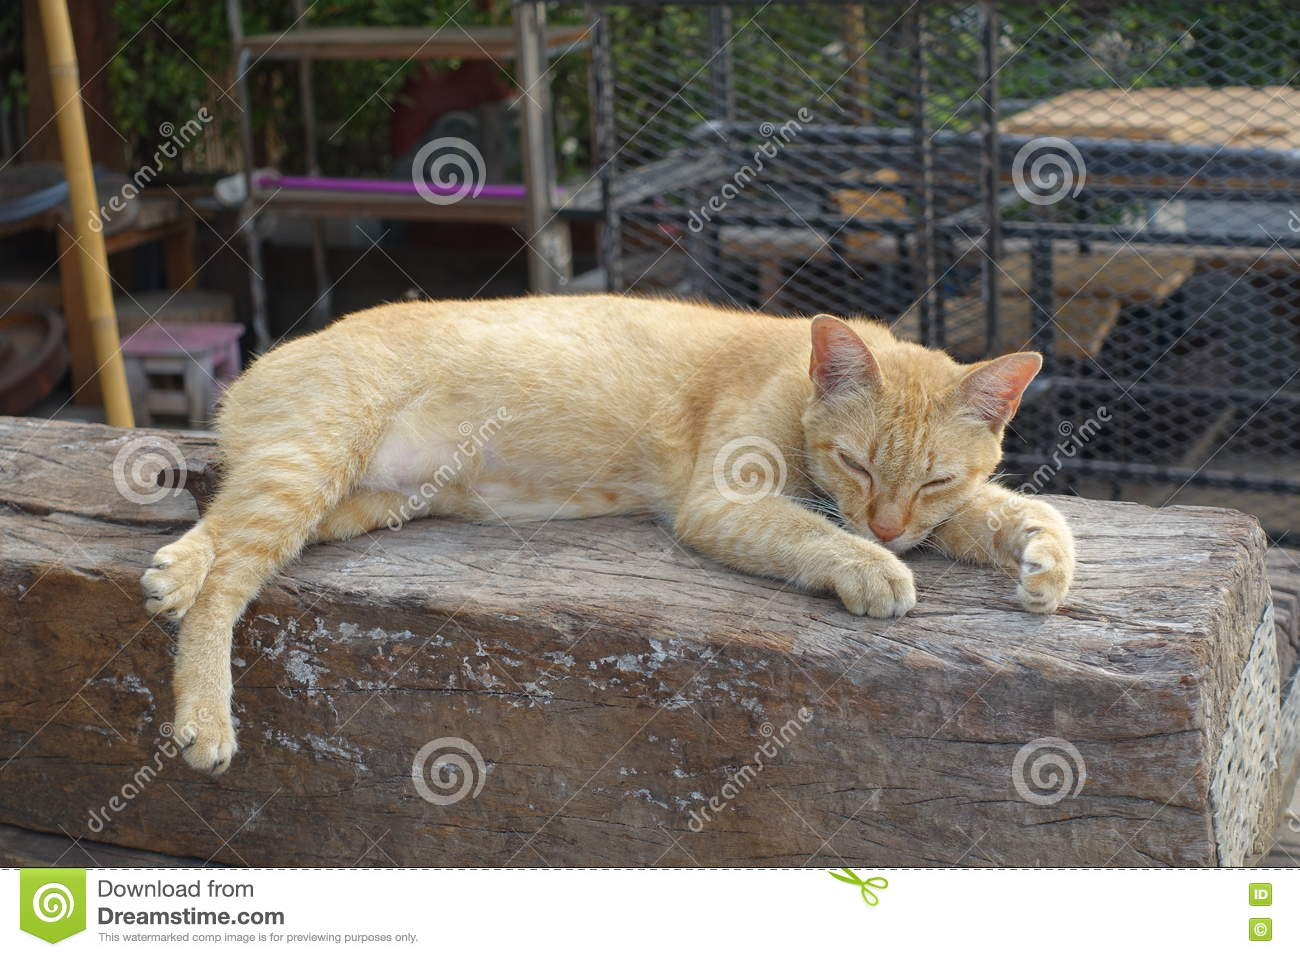 Orange cat is sleeping on the open air